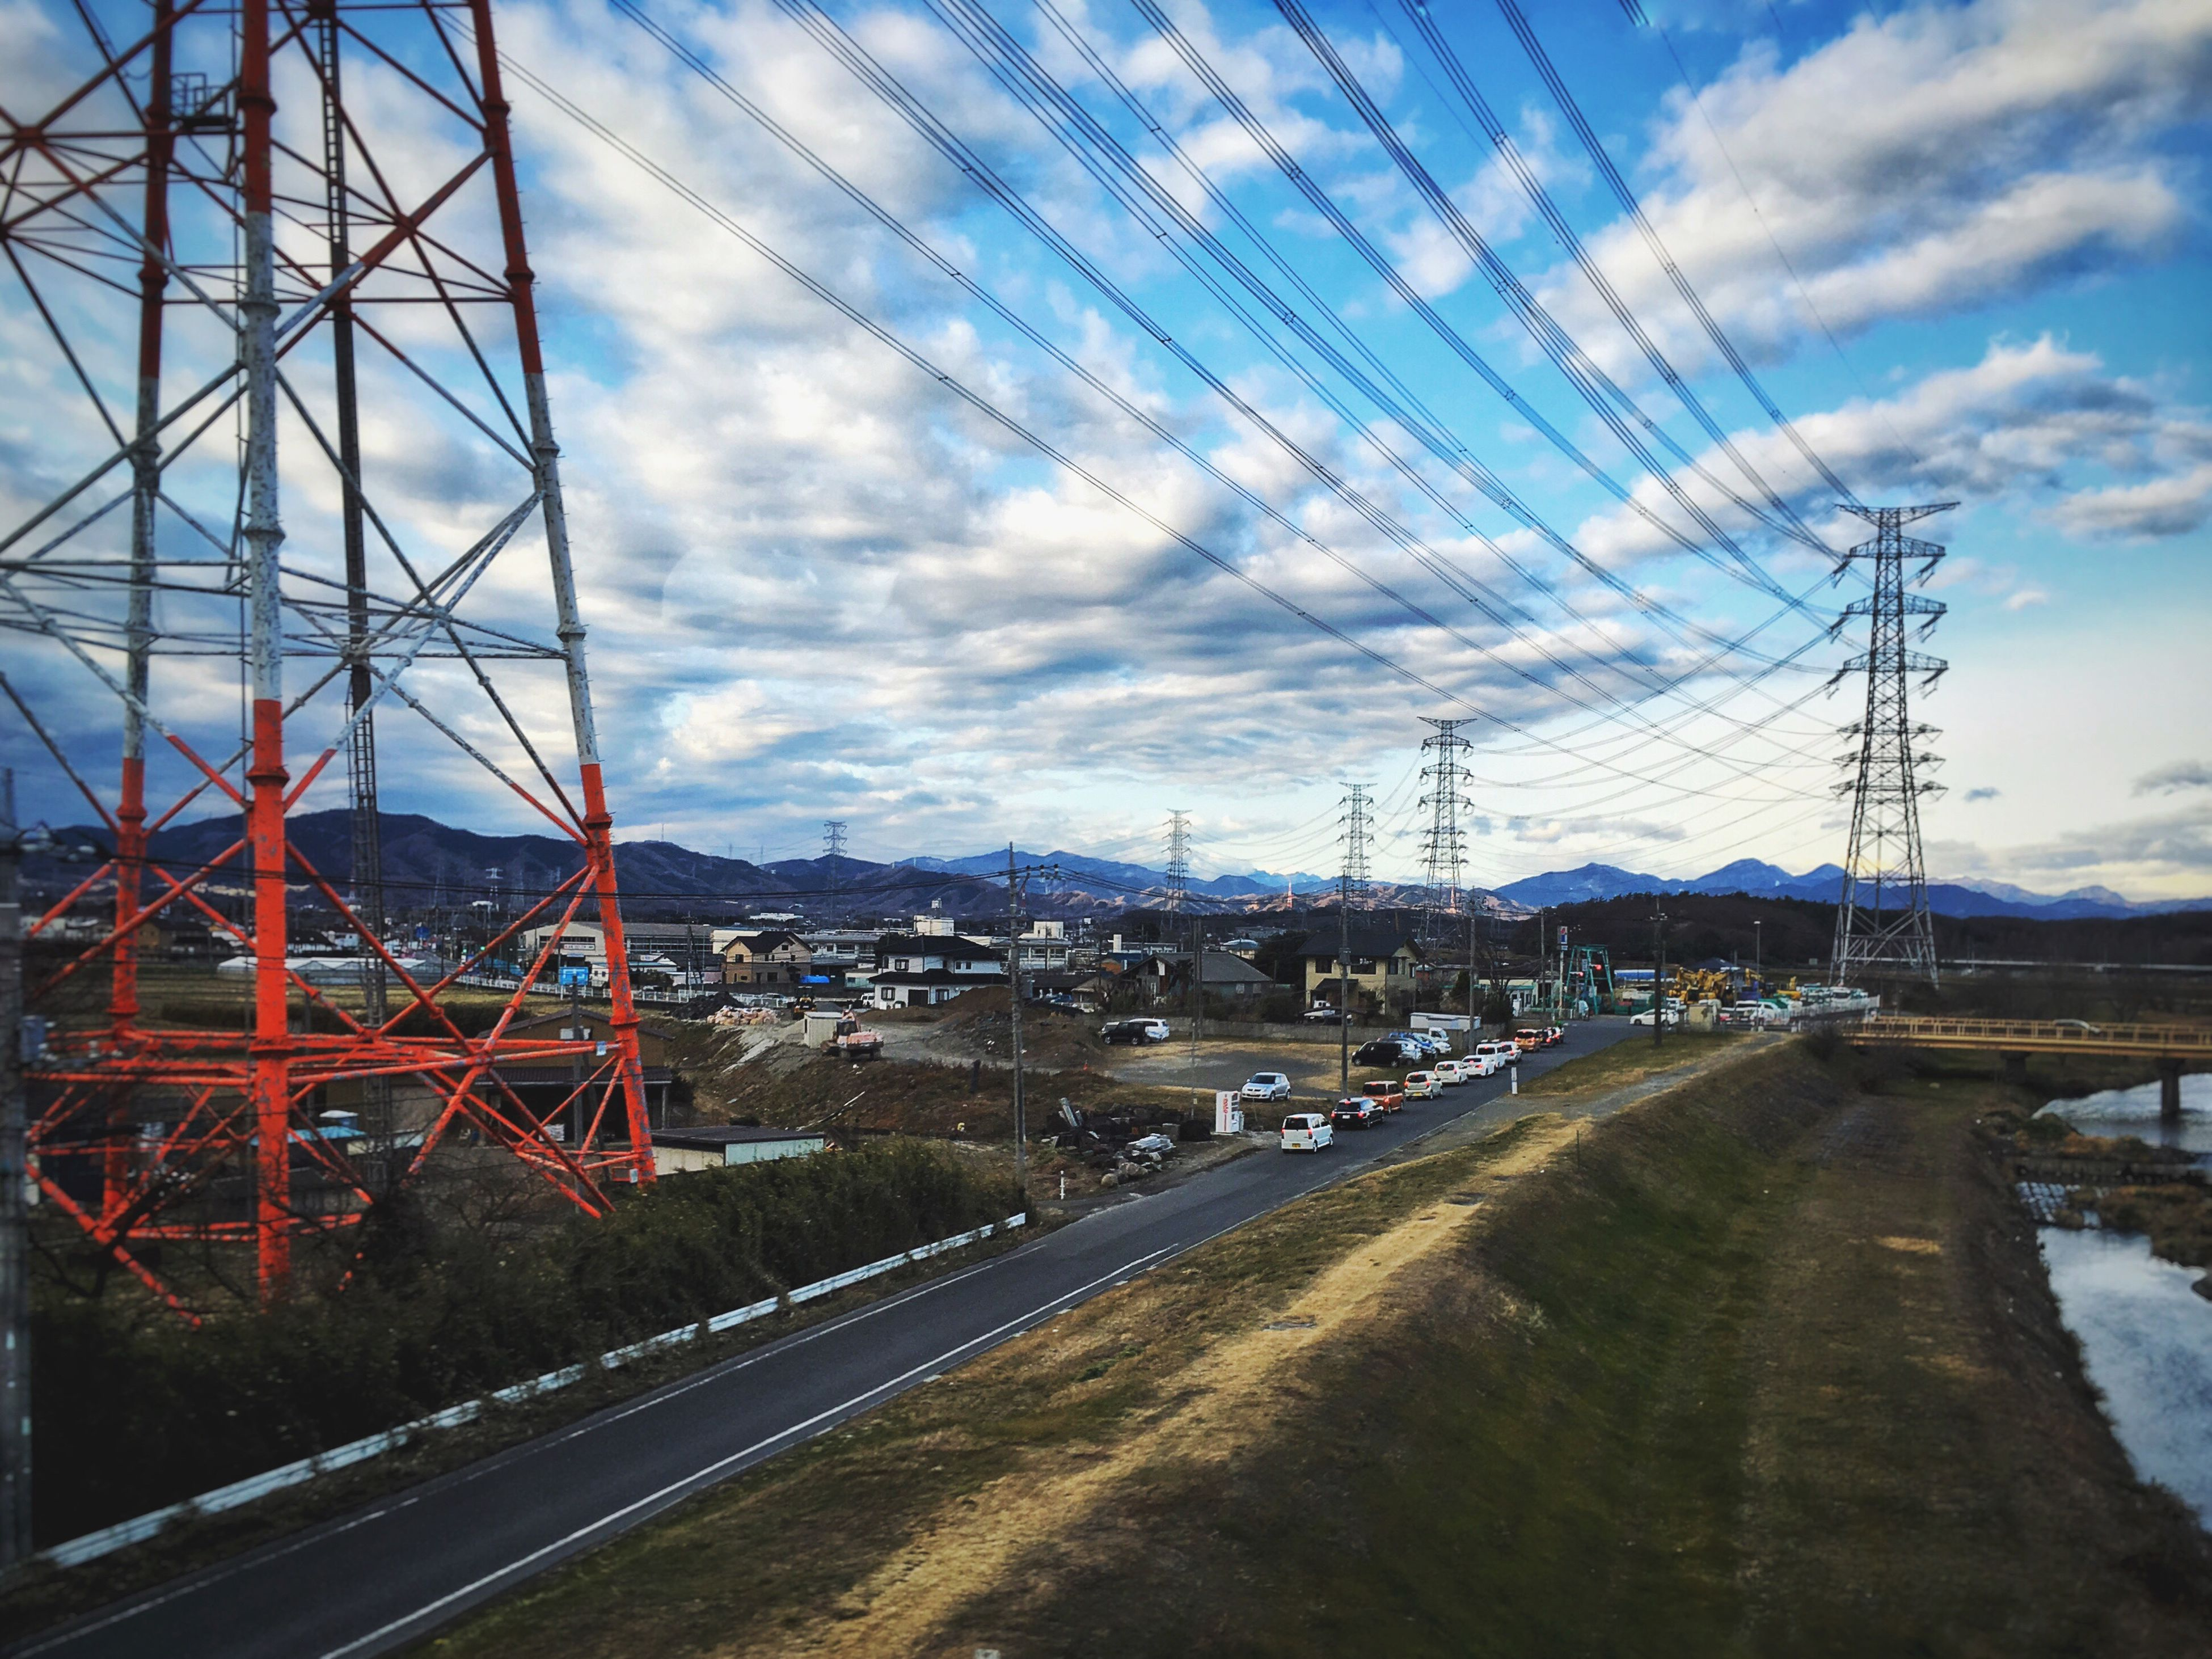 transportation, electricity pylon, connection, electricity, power line, sky, cable, power supply, cloud, the way forward, mode of transport, cloud - sky, mountain, day, blue, outdoors, diminishing perspective, long, track, complexity